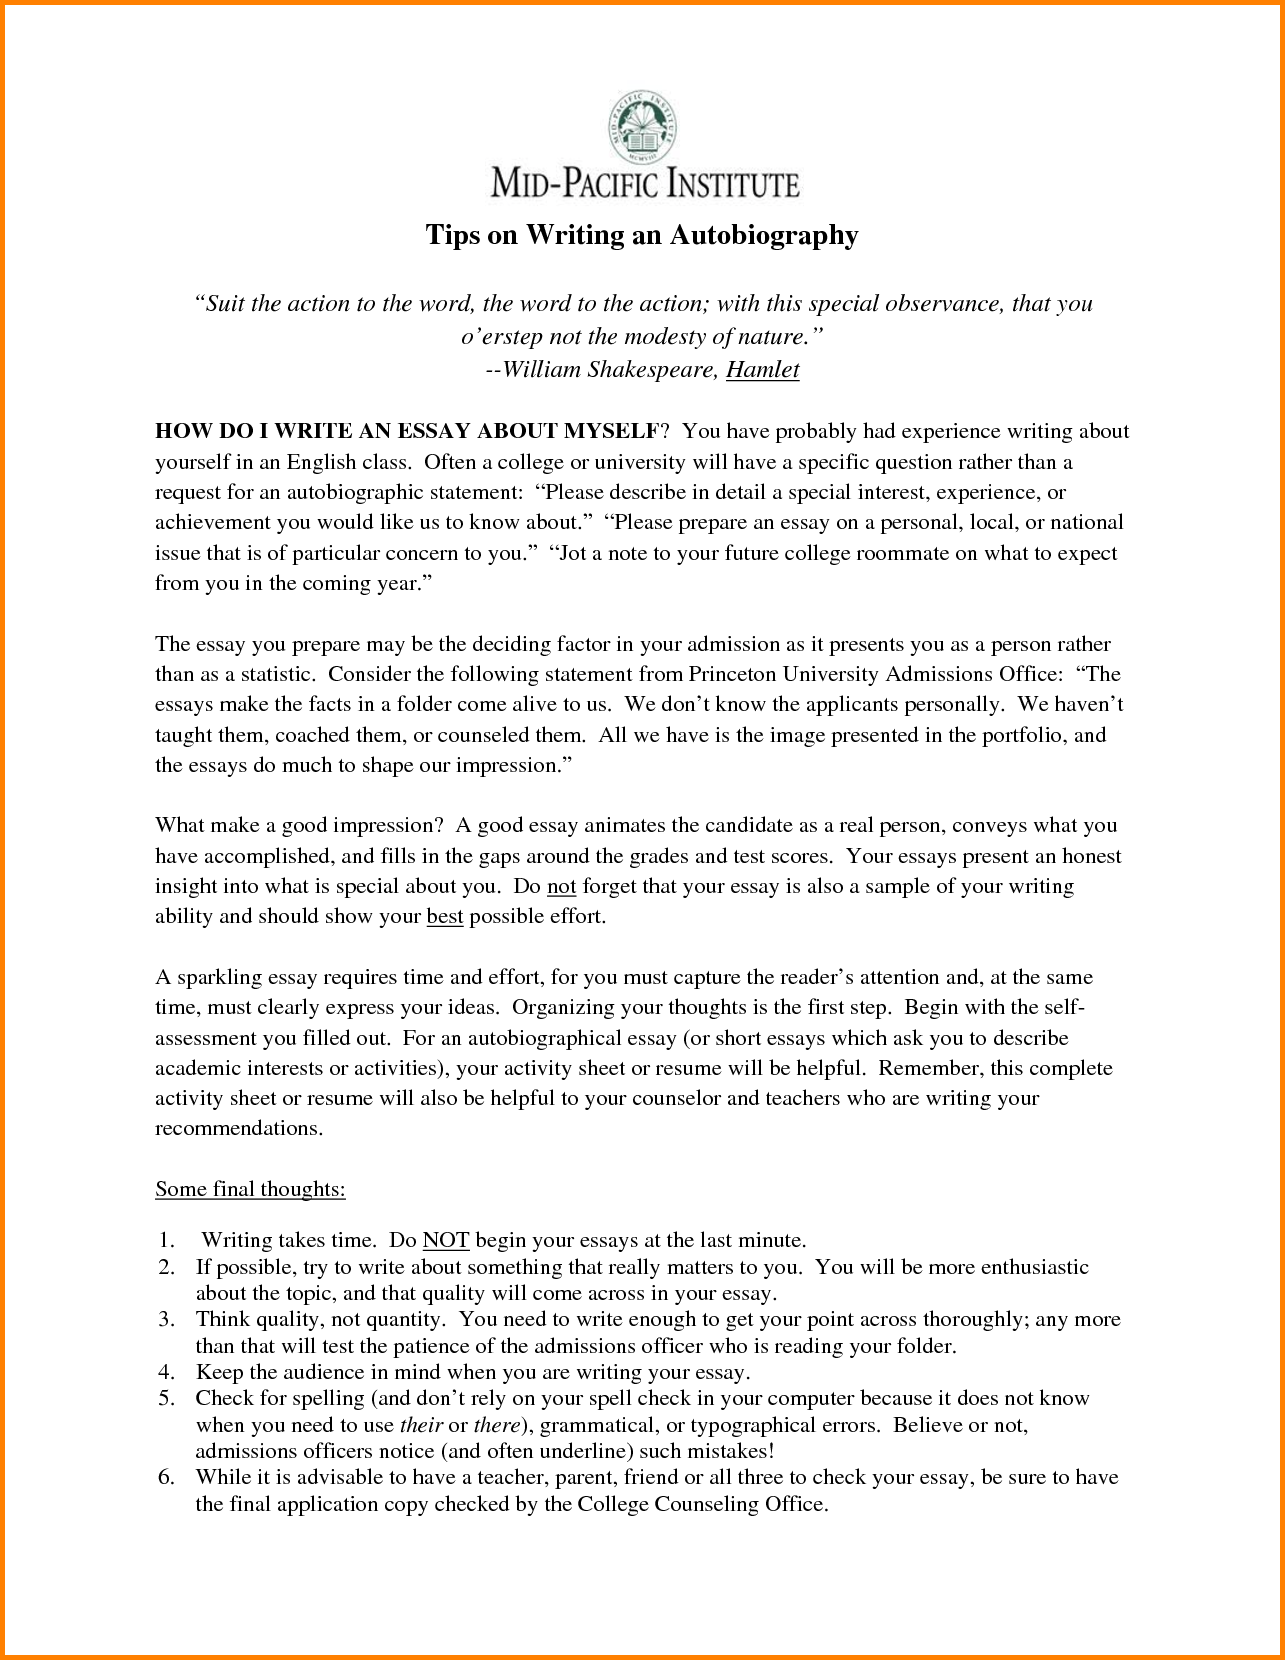 007 Essay Example How To Begin An Start College Application About Yourself Starting L Incredible Introduction A Book Full